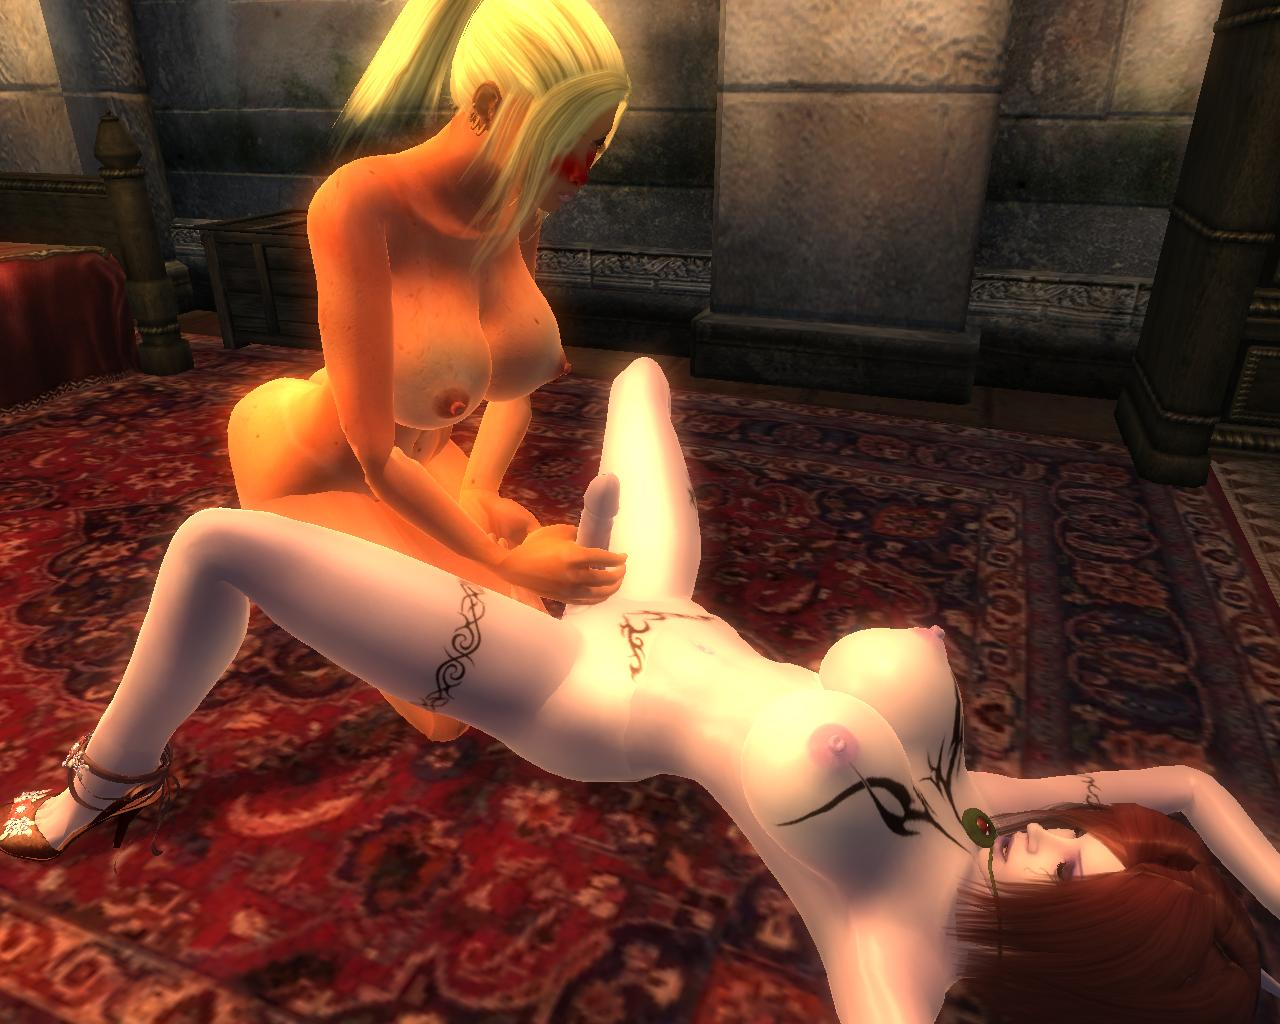 Oblivion sex animations mod naked movies